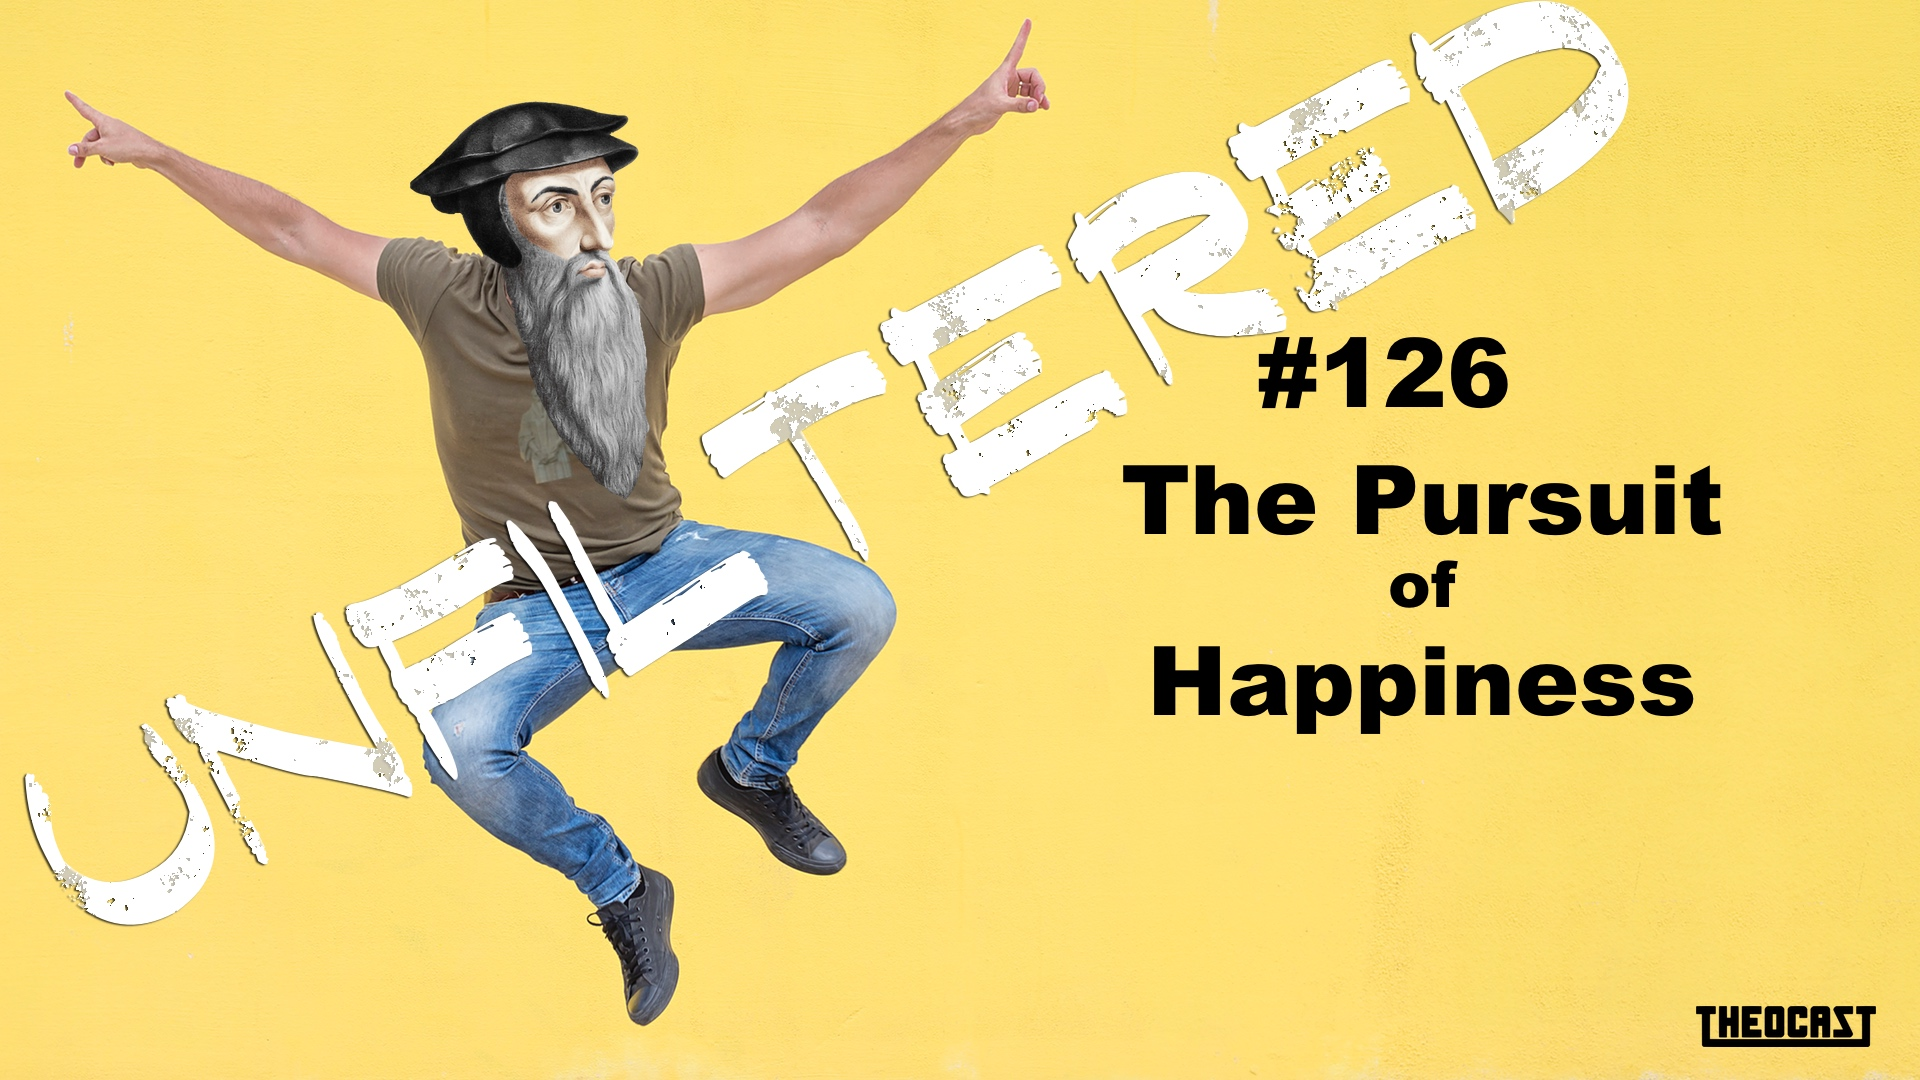 UNFILTERED #126 The Pursuit of Happiness